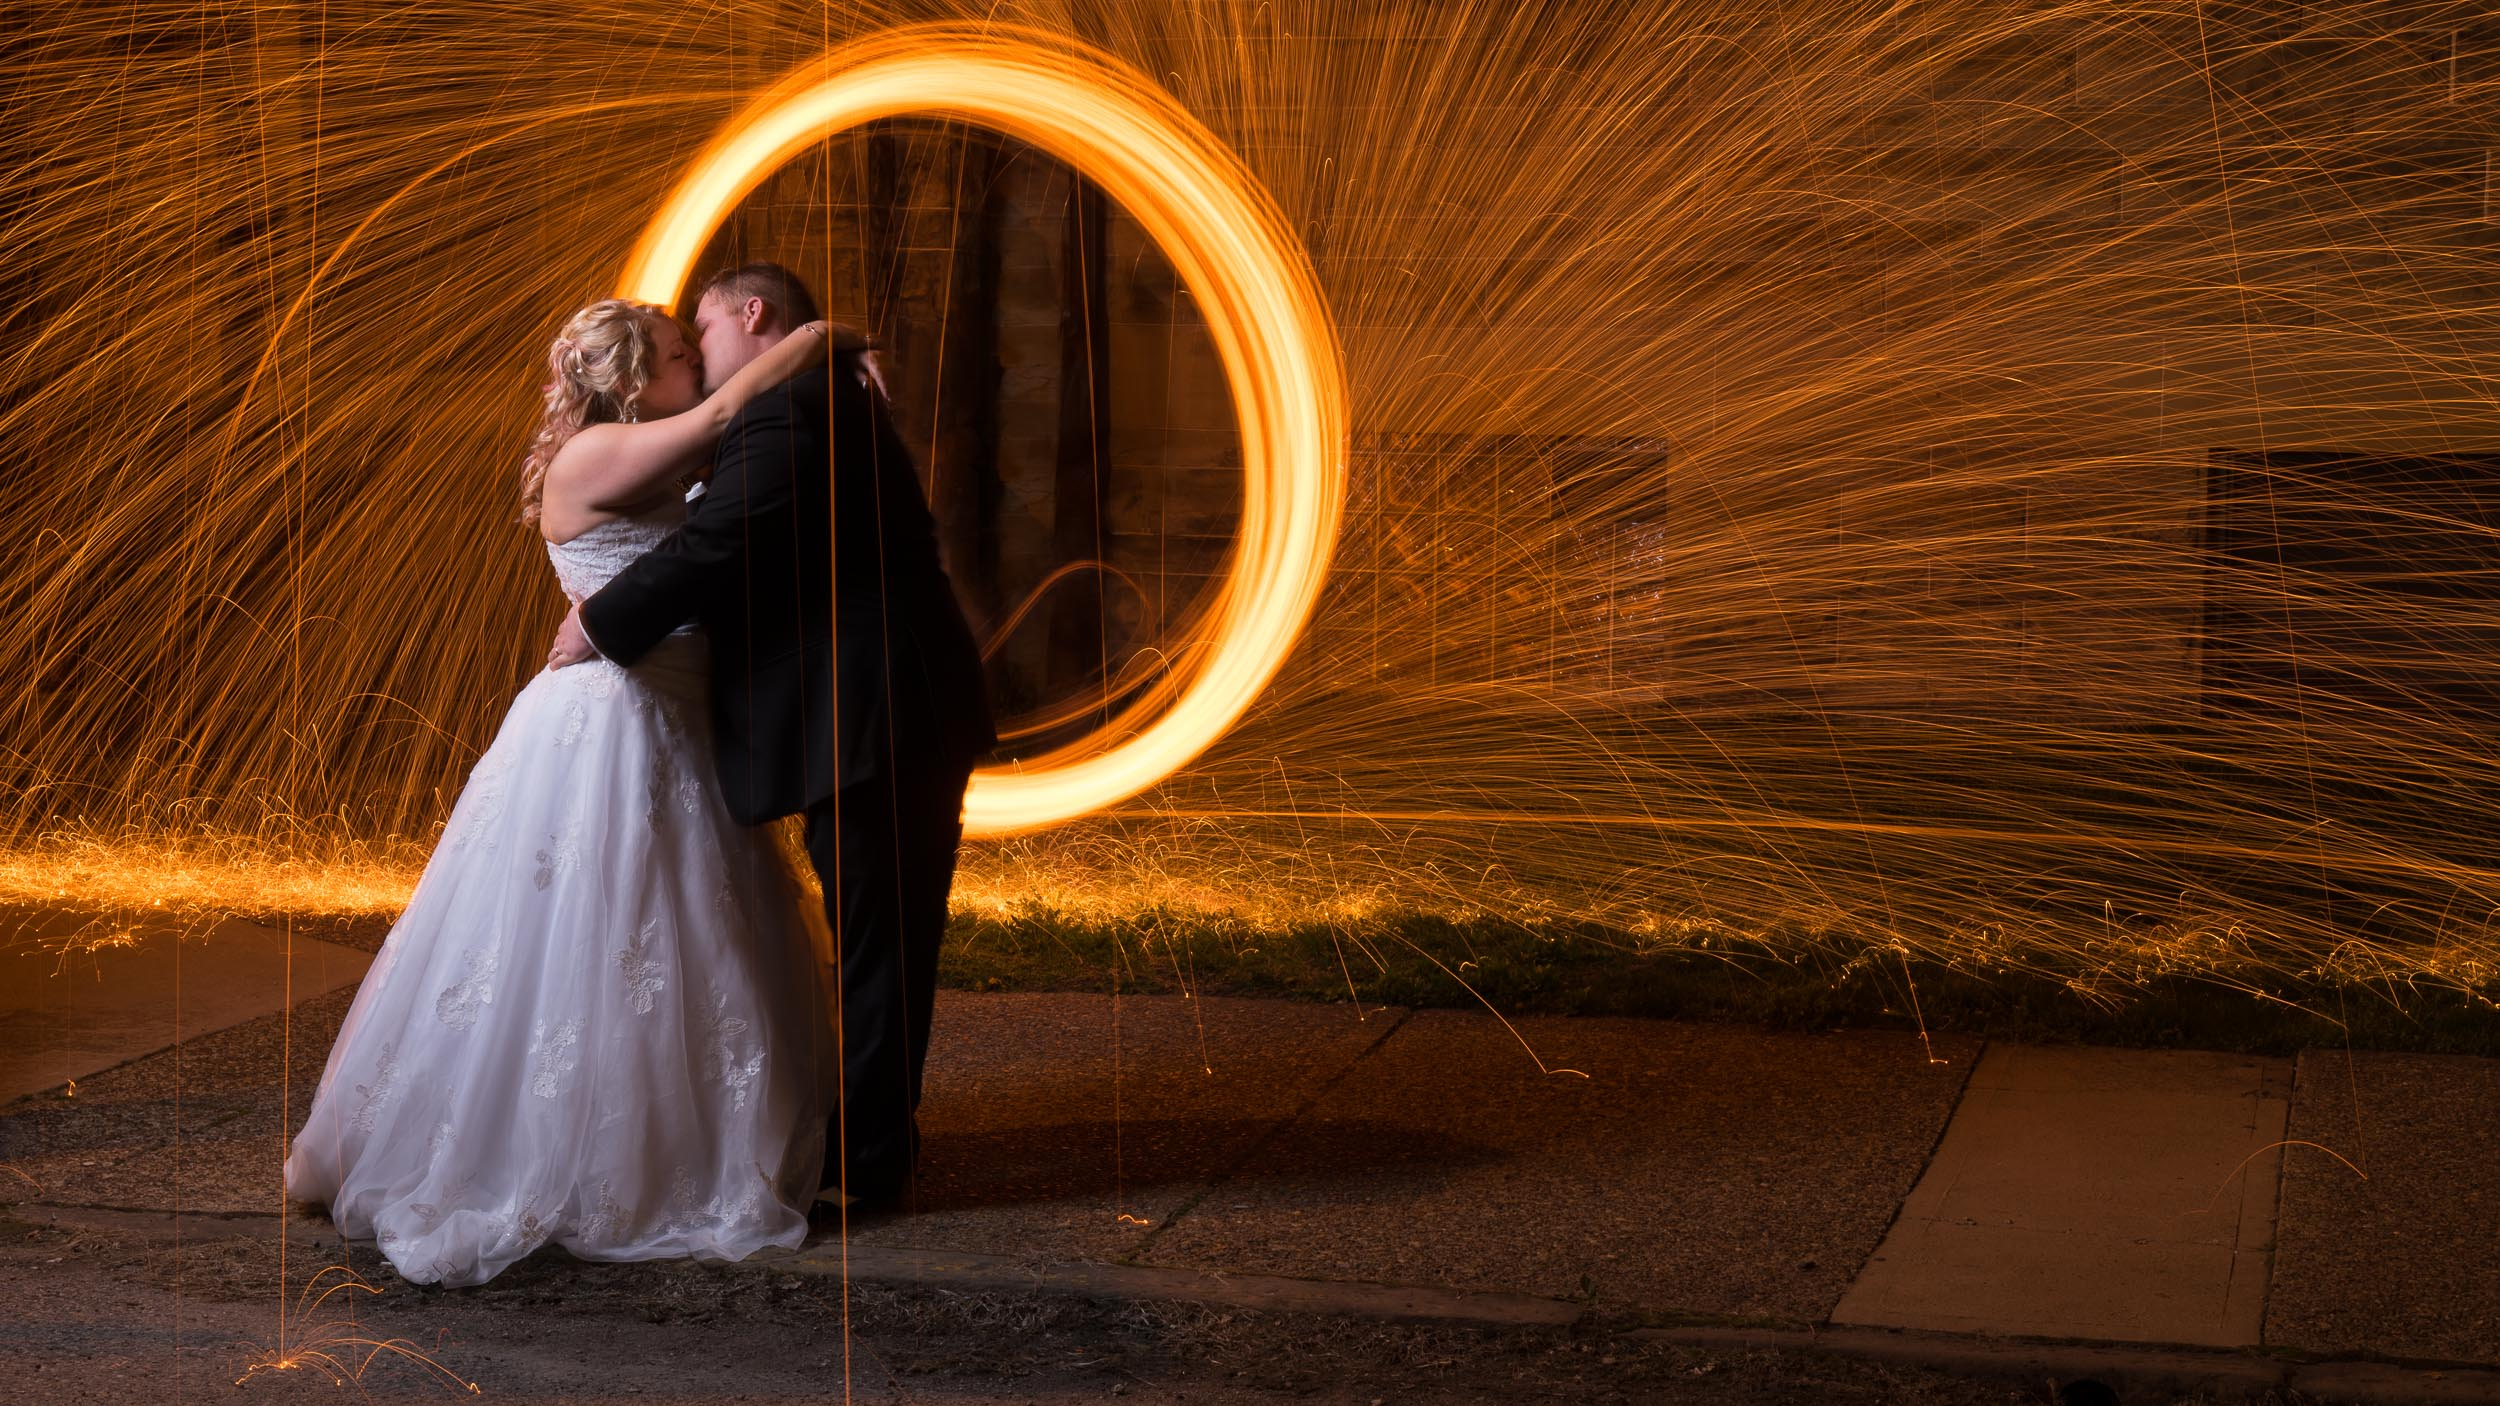 Bride-and-Groom-Spinning-Fire-Cefelos-1.jpg